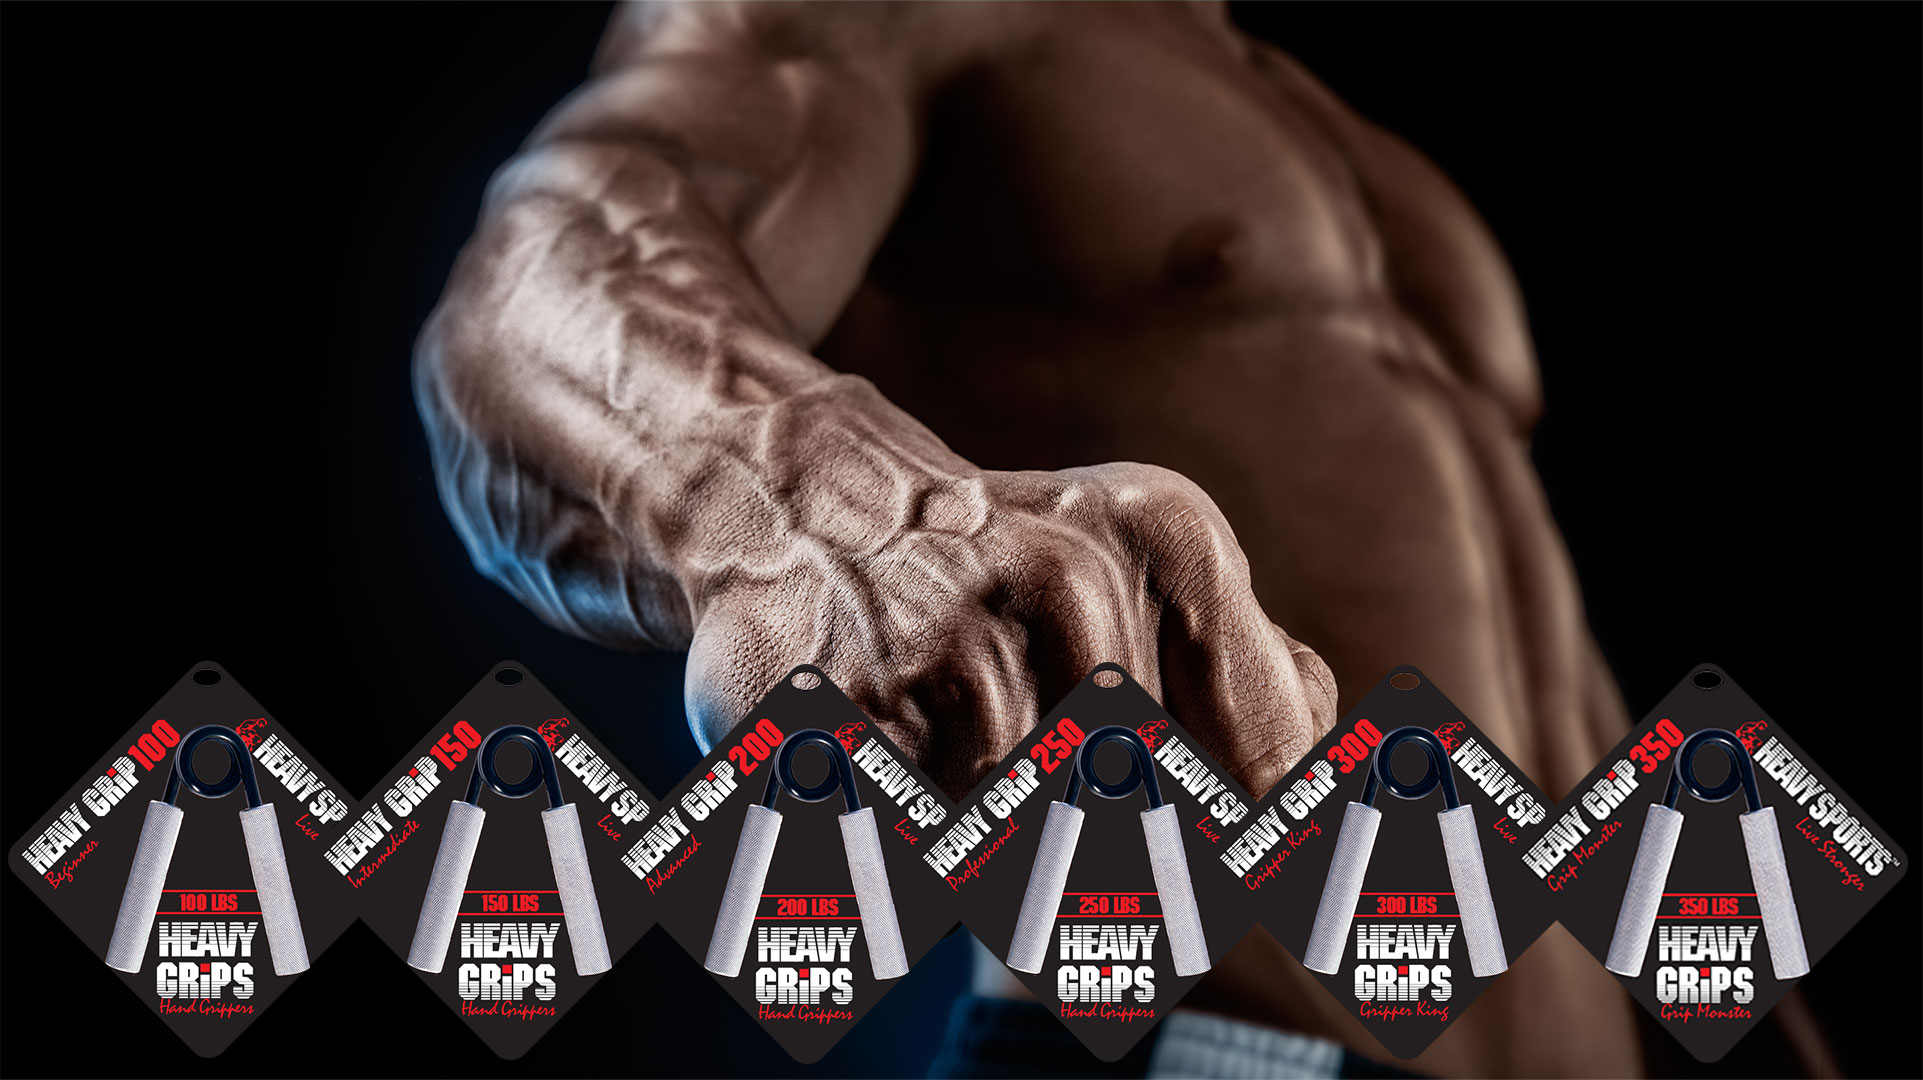 Heavy Grip Handgrippers